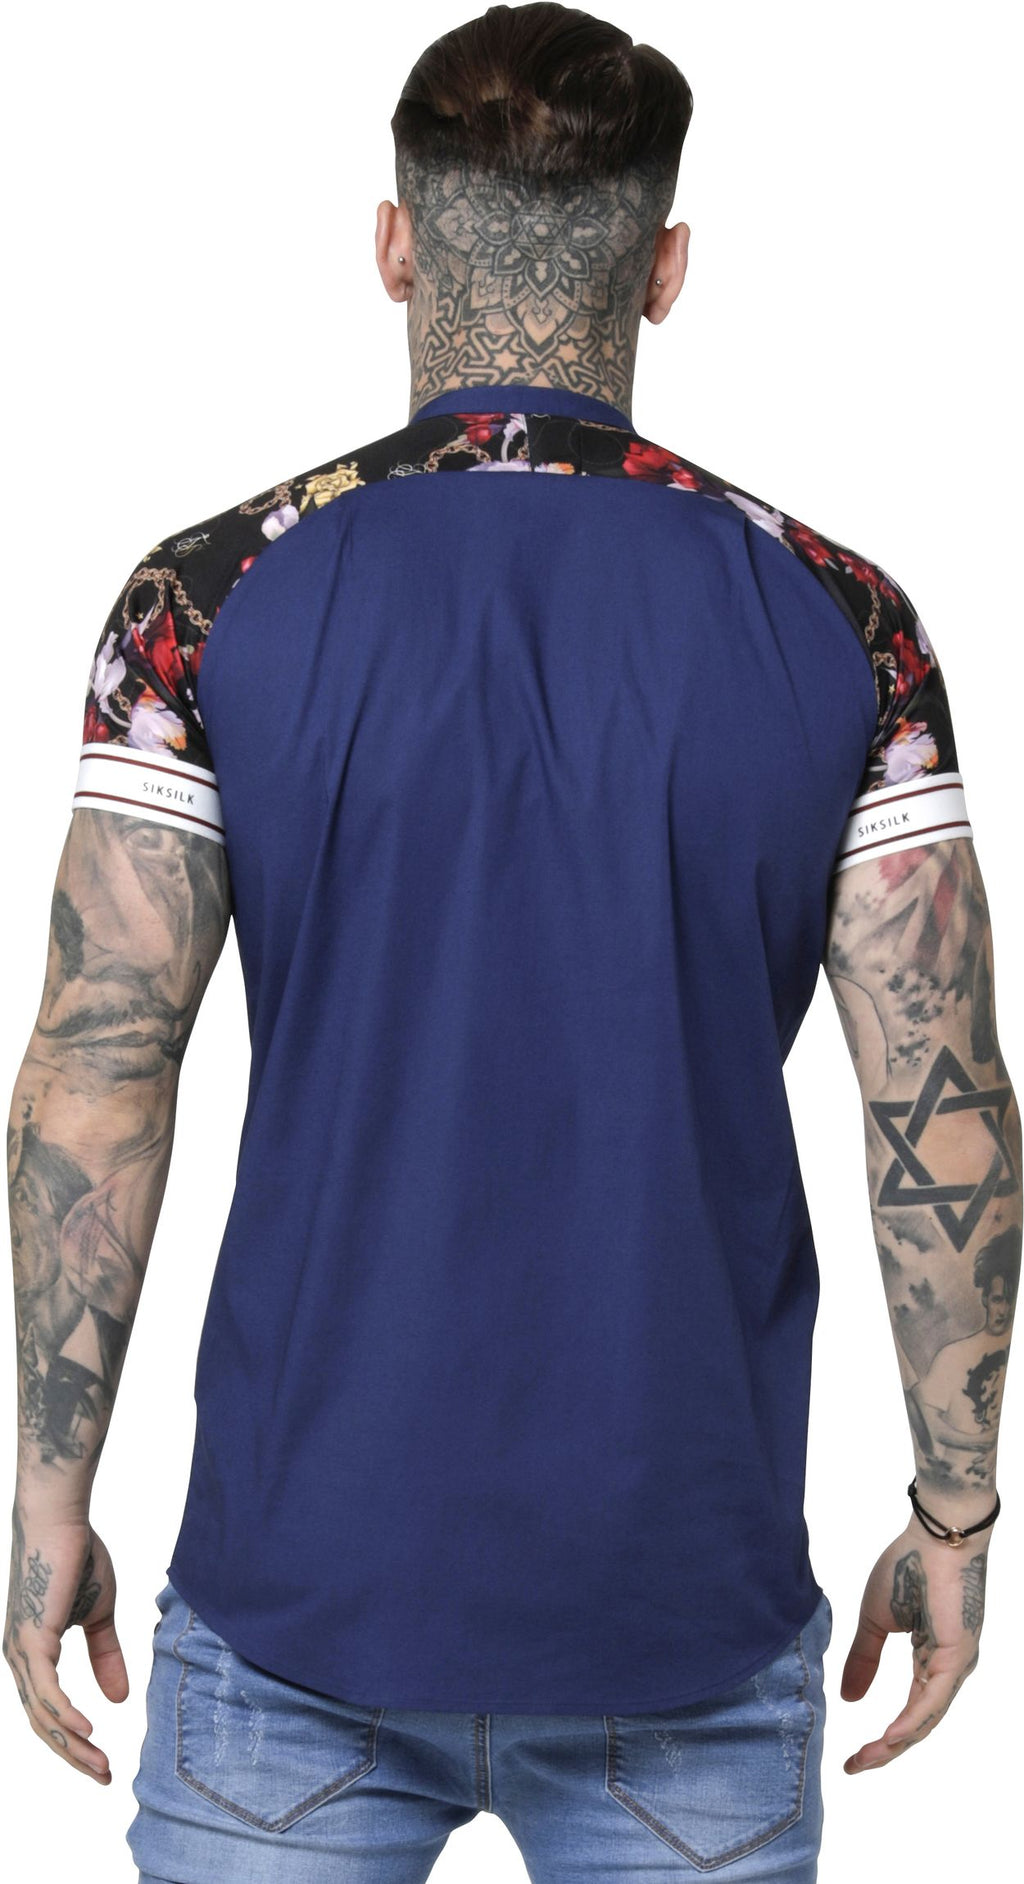 Sik Silk Starlite Raglan Tech Short Sleeve Shirt